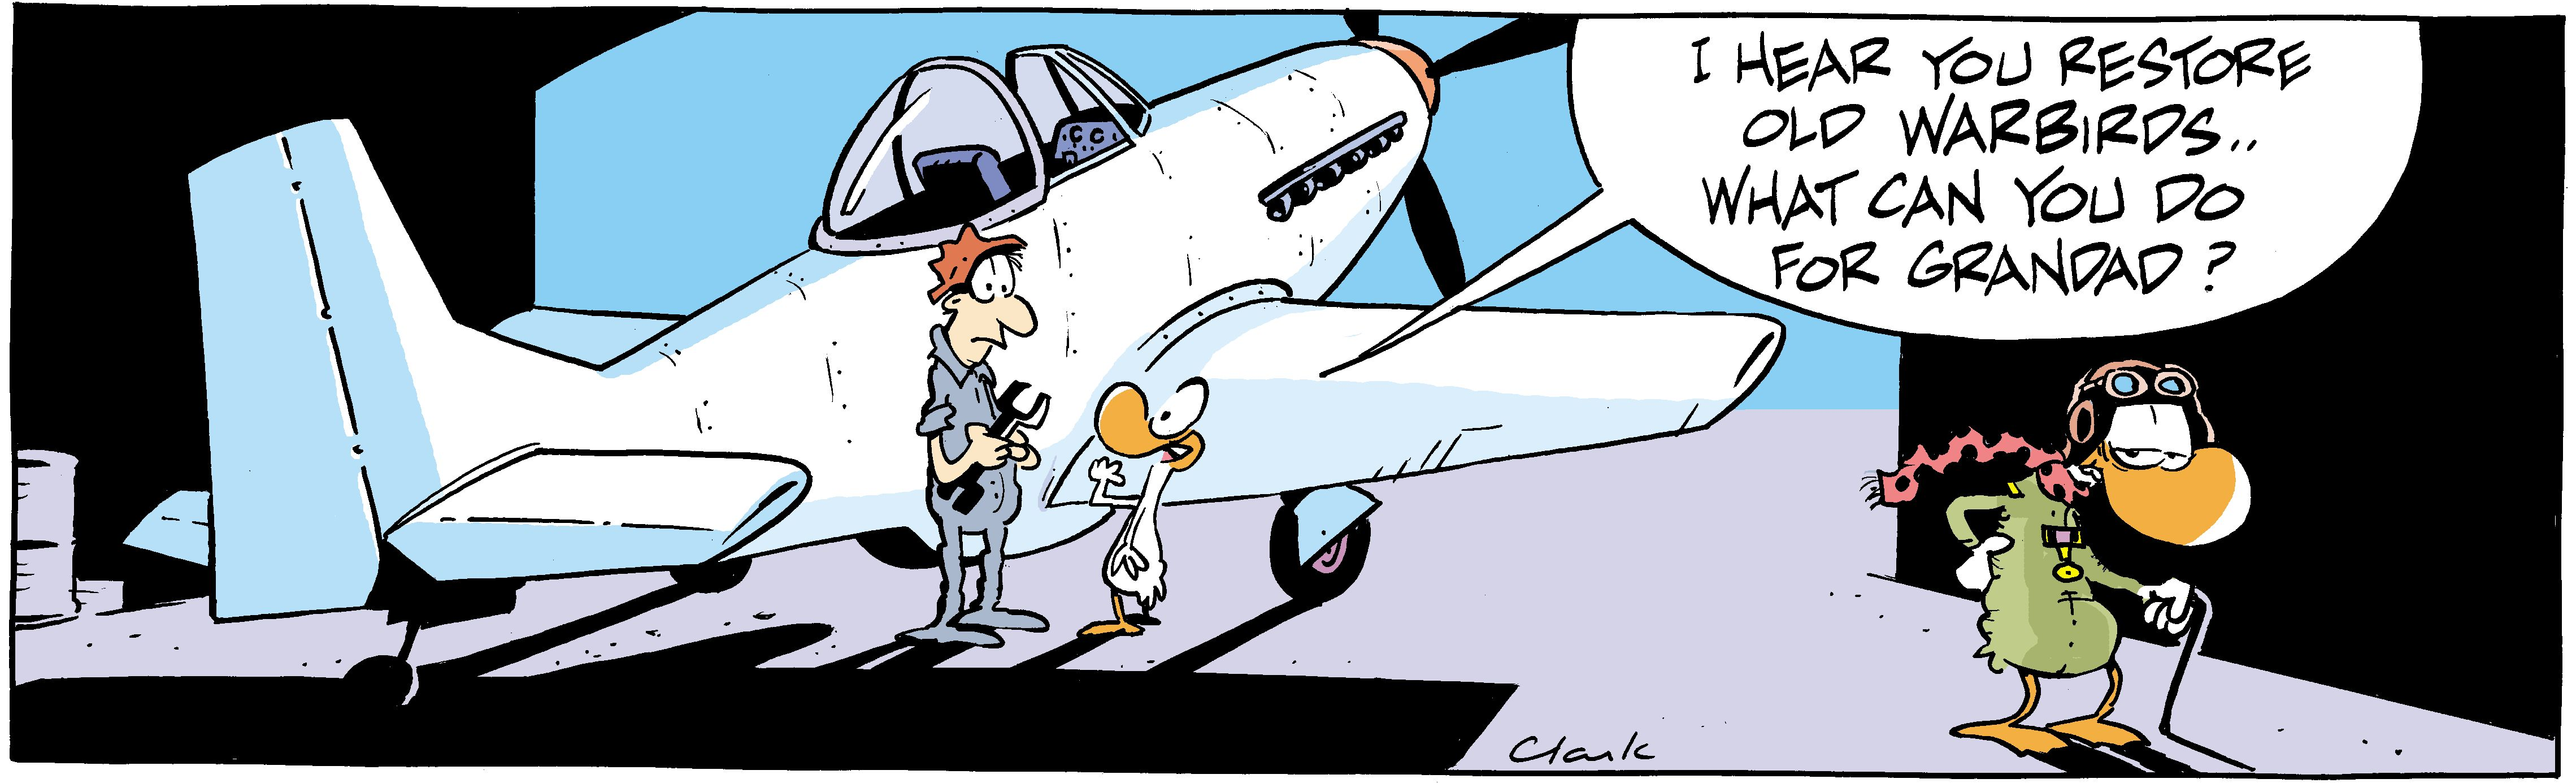 Old Warbirds Comic